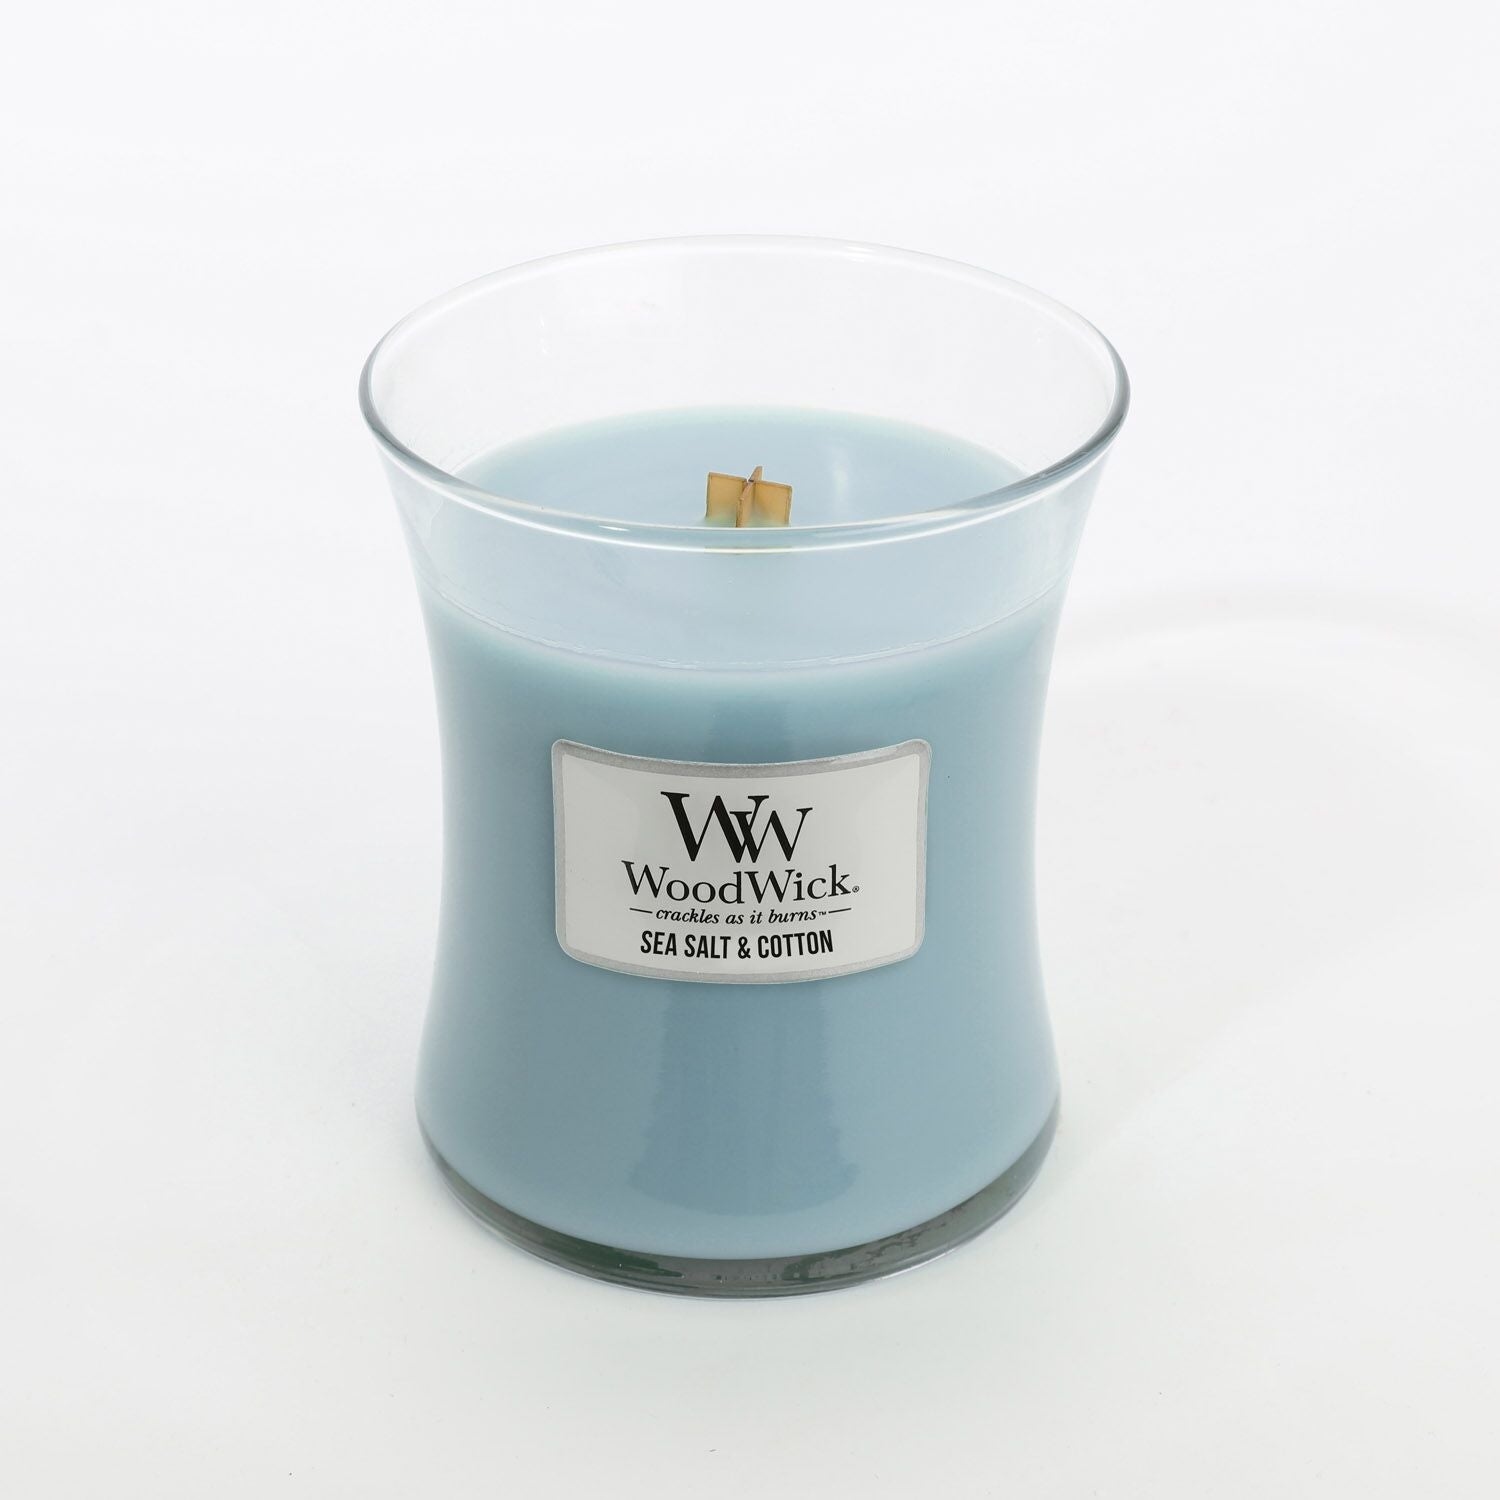 Medium Sea Salt & Cotton Scented WoodWick Soy Candle